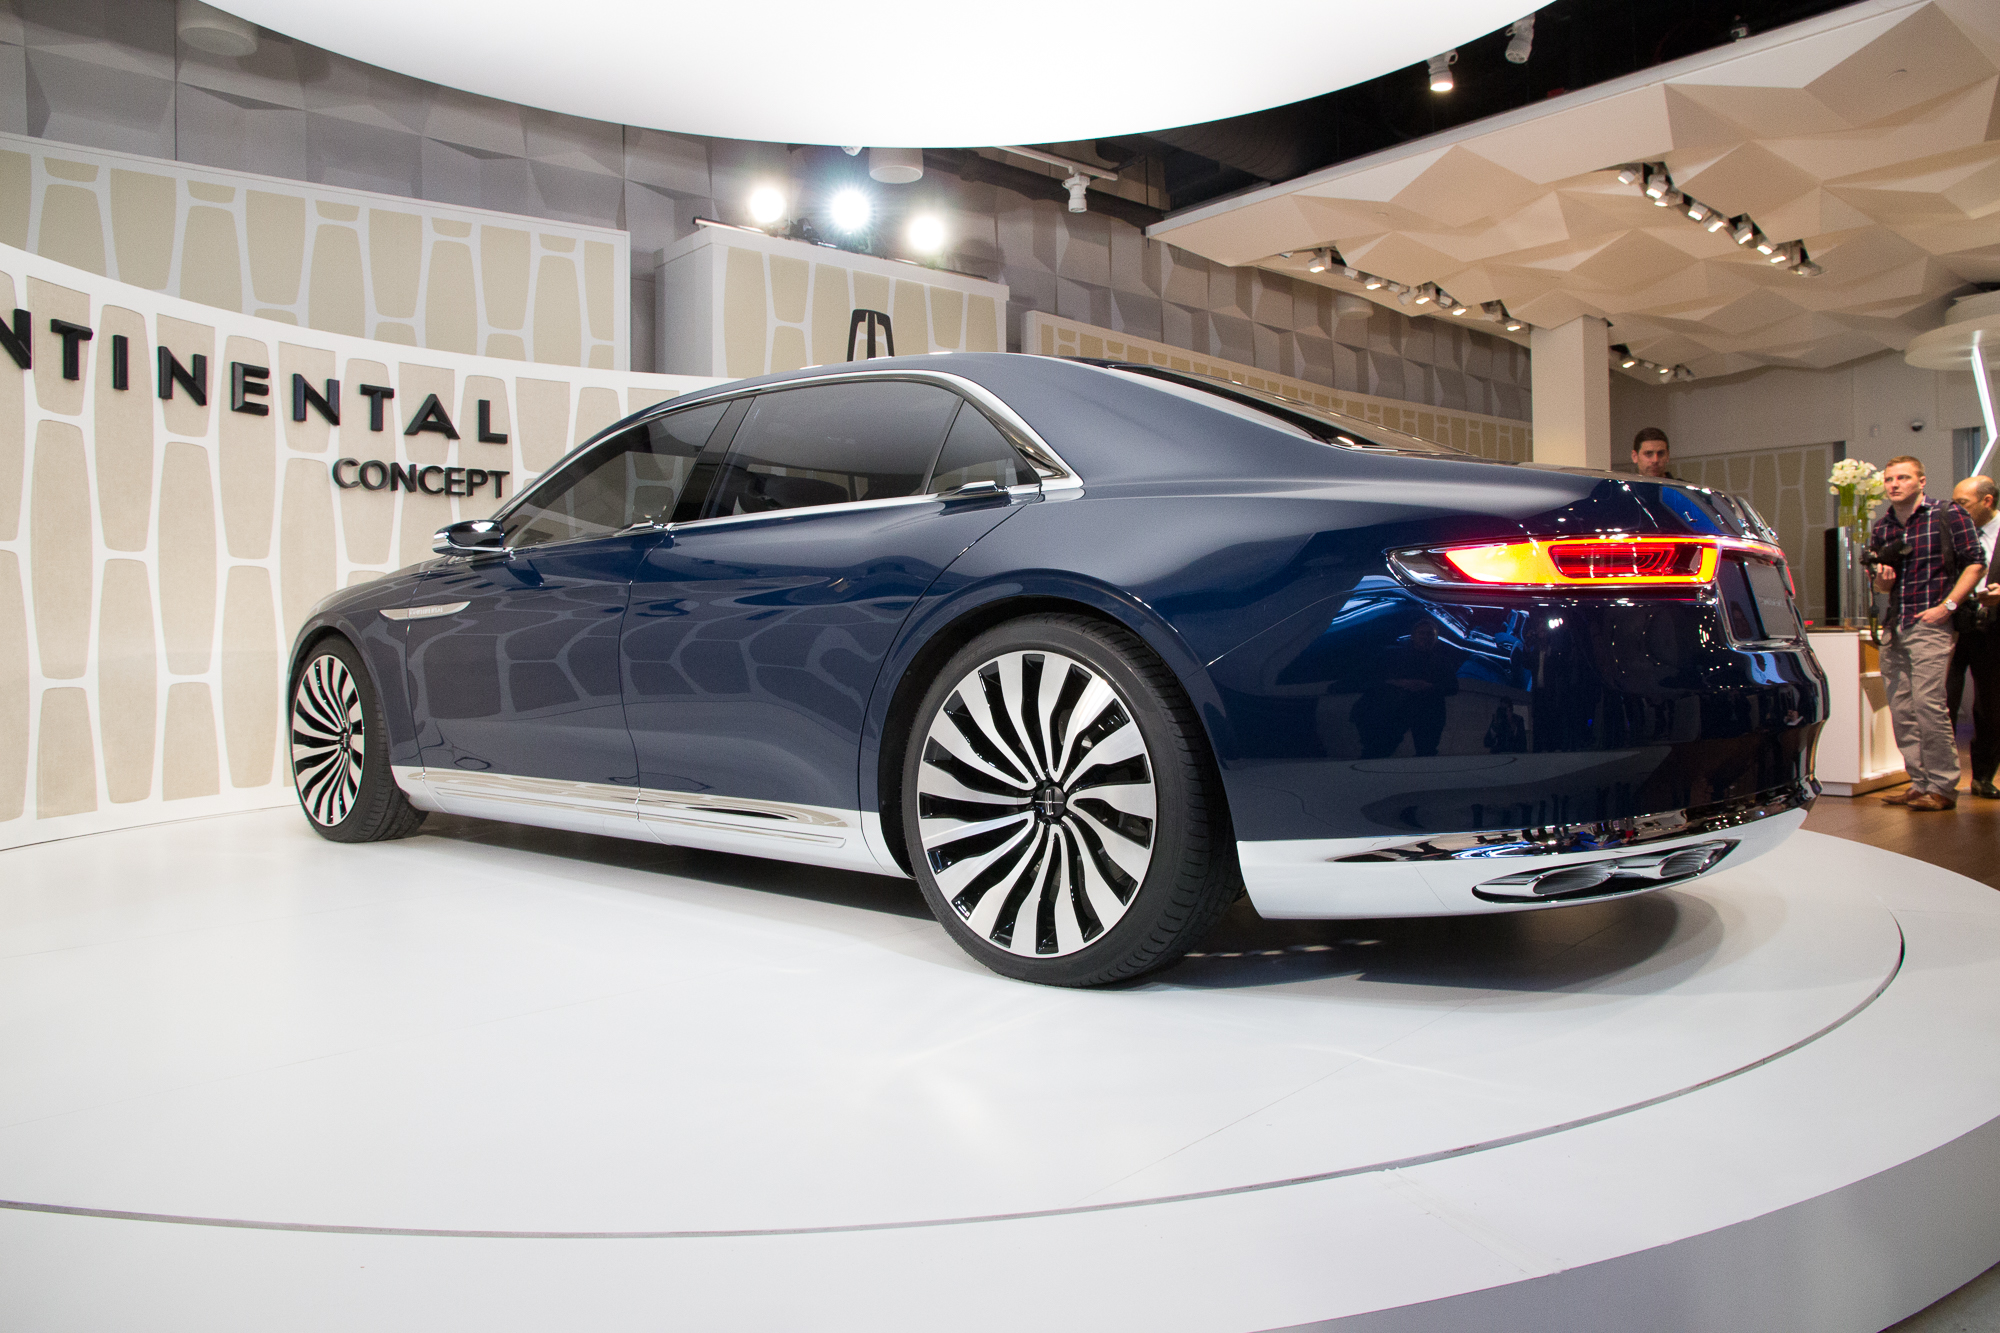 2015 - [Lincoln] Continental Lincoln-continental-concept-unveiling-new-york-city-march-29-2015_100505969_h